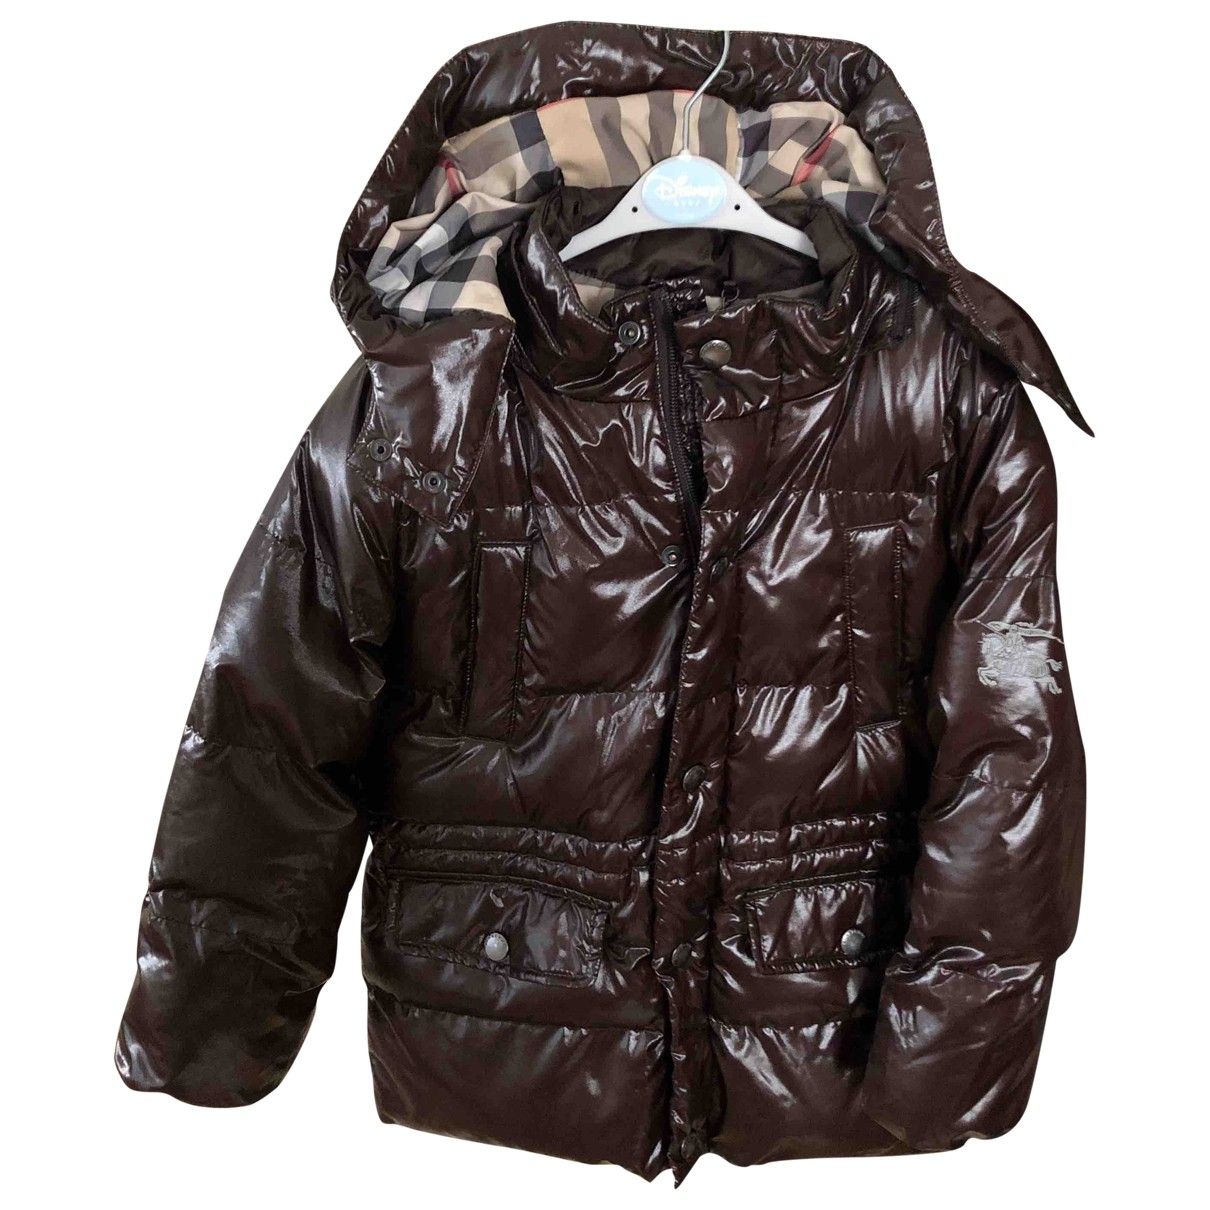 Burberry \N Brown jacket & coat for Kids 5 years - up to 108cm FR